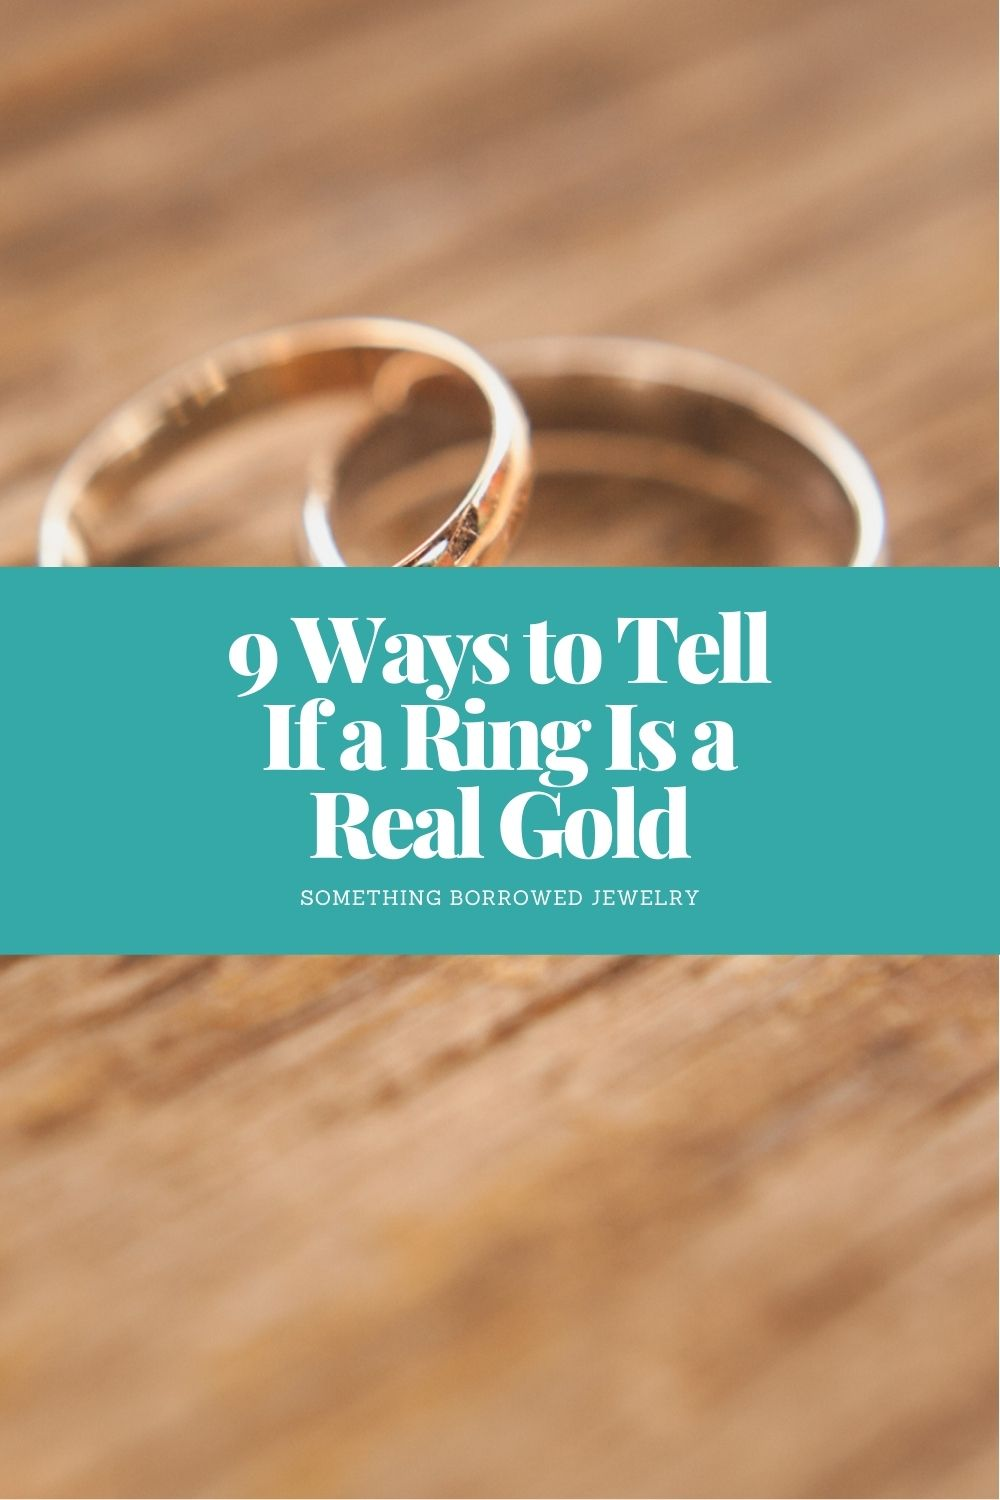 9 Ways to Tell If a Ring Is a Real Gold pin 2